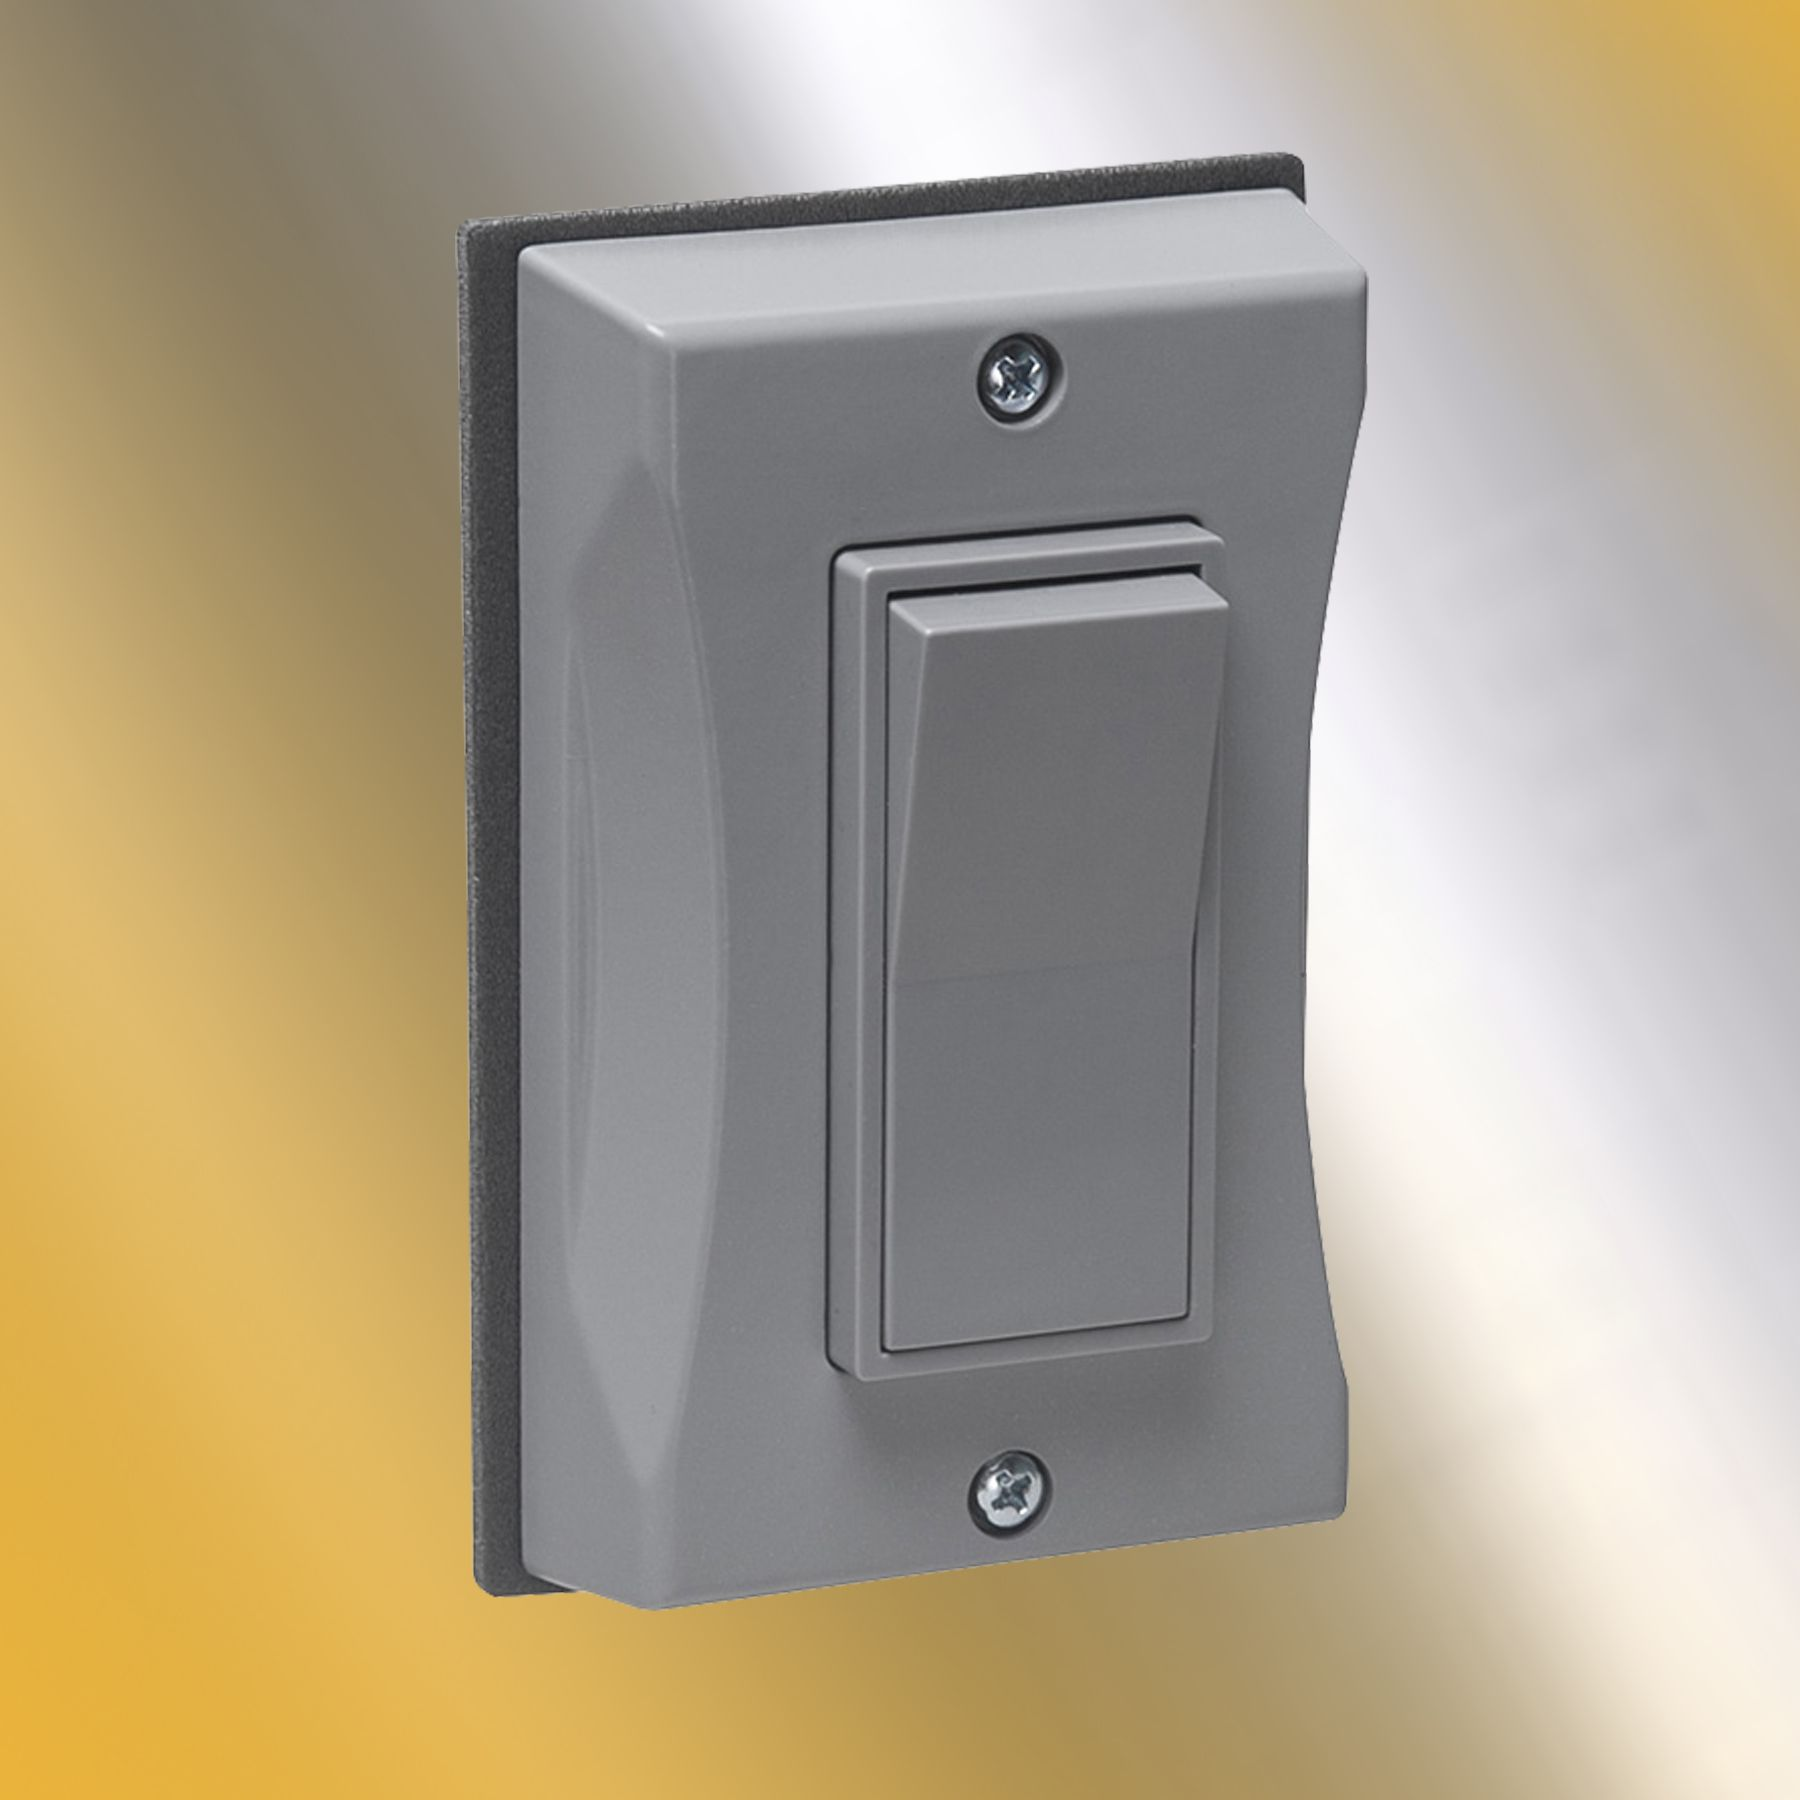 News today our bell brand introduces the very first outdoor today our bell brand introduces the very first outdoor decorator style switch covers mozeypictures Choice Image